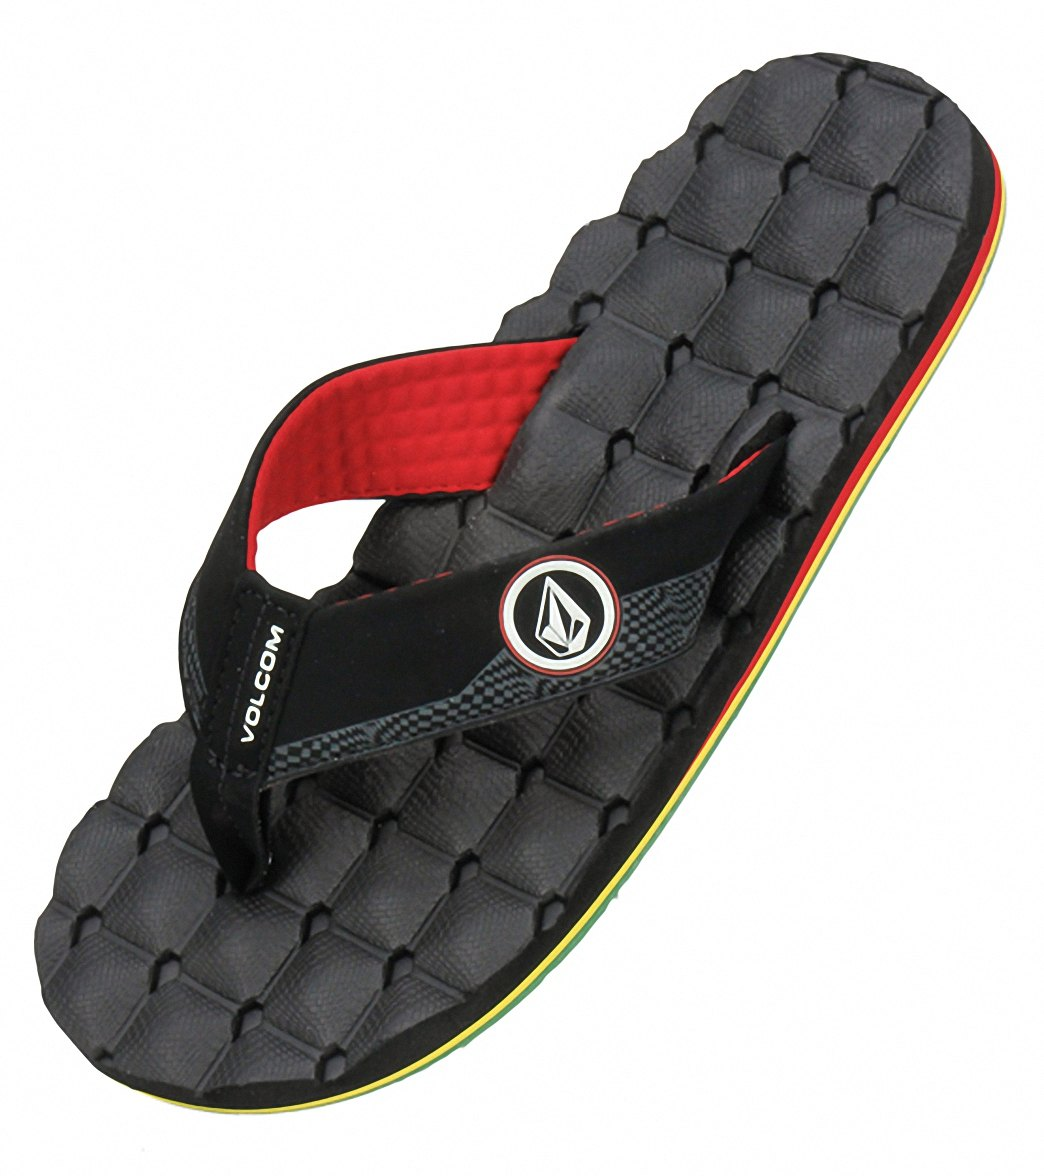 adc76ba92d55dd Volcom Men s Recliner Flip Flop at SwimOutlet.com